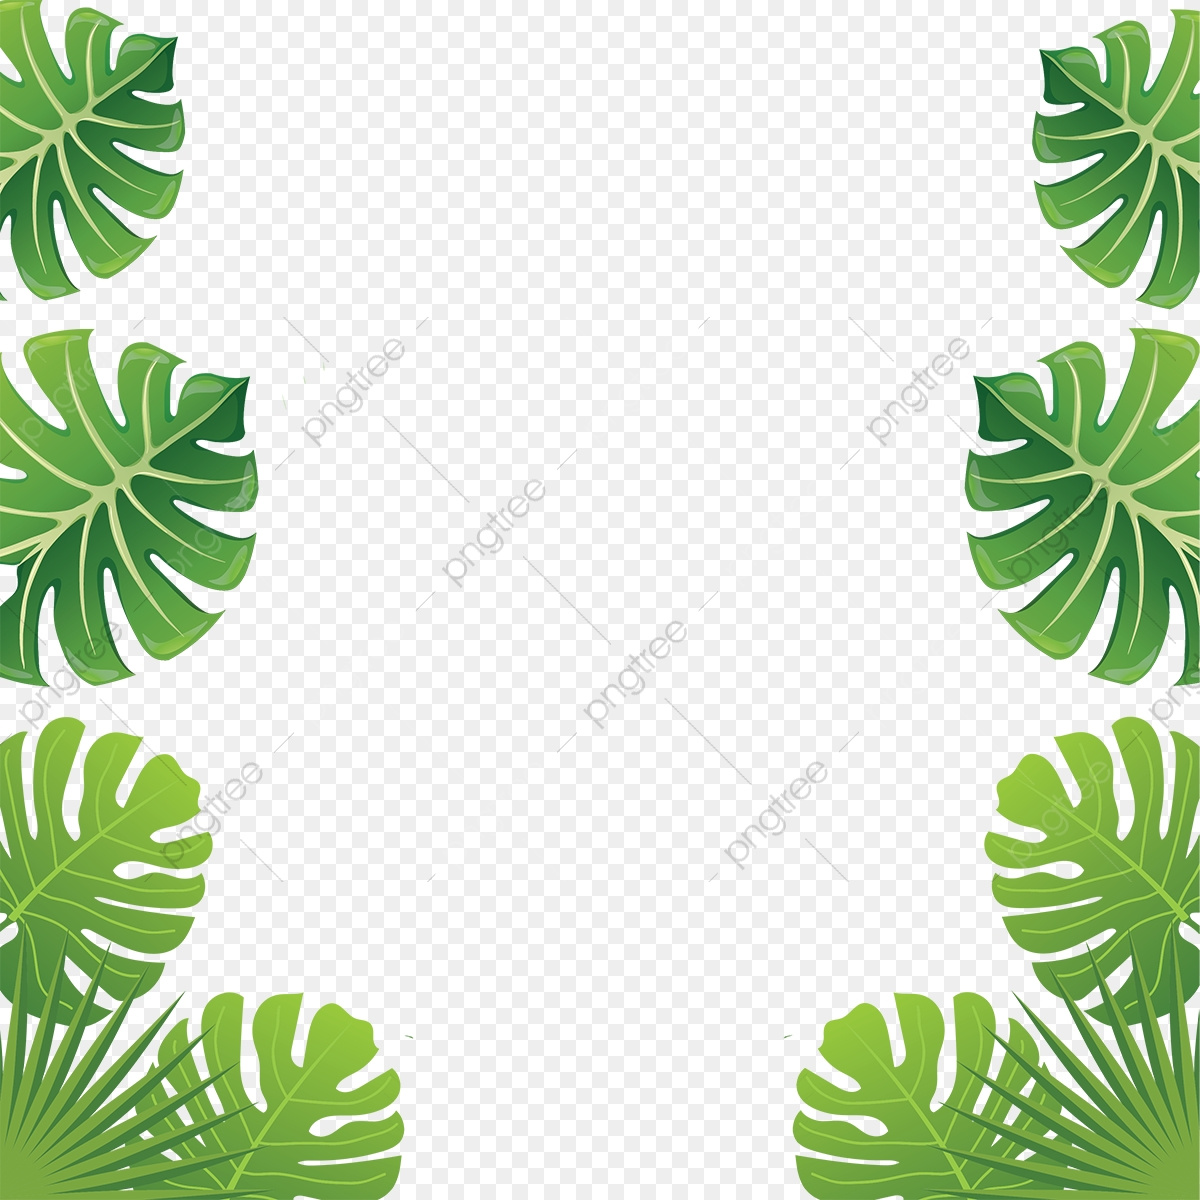 Aloha Tropical Flowers, Aloha Flowers, Tropical Leaves, Leaves Frame.